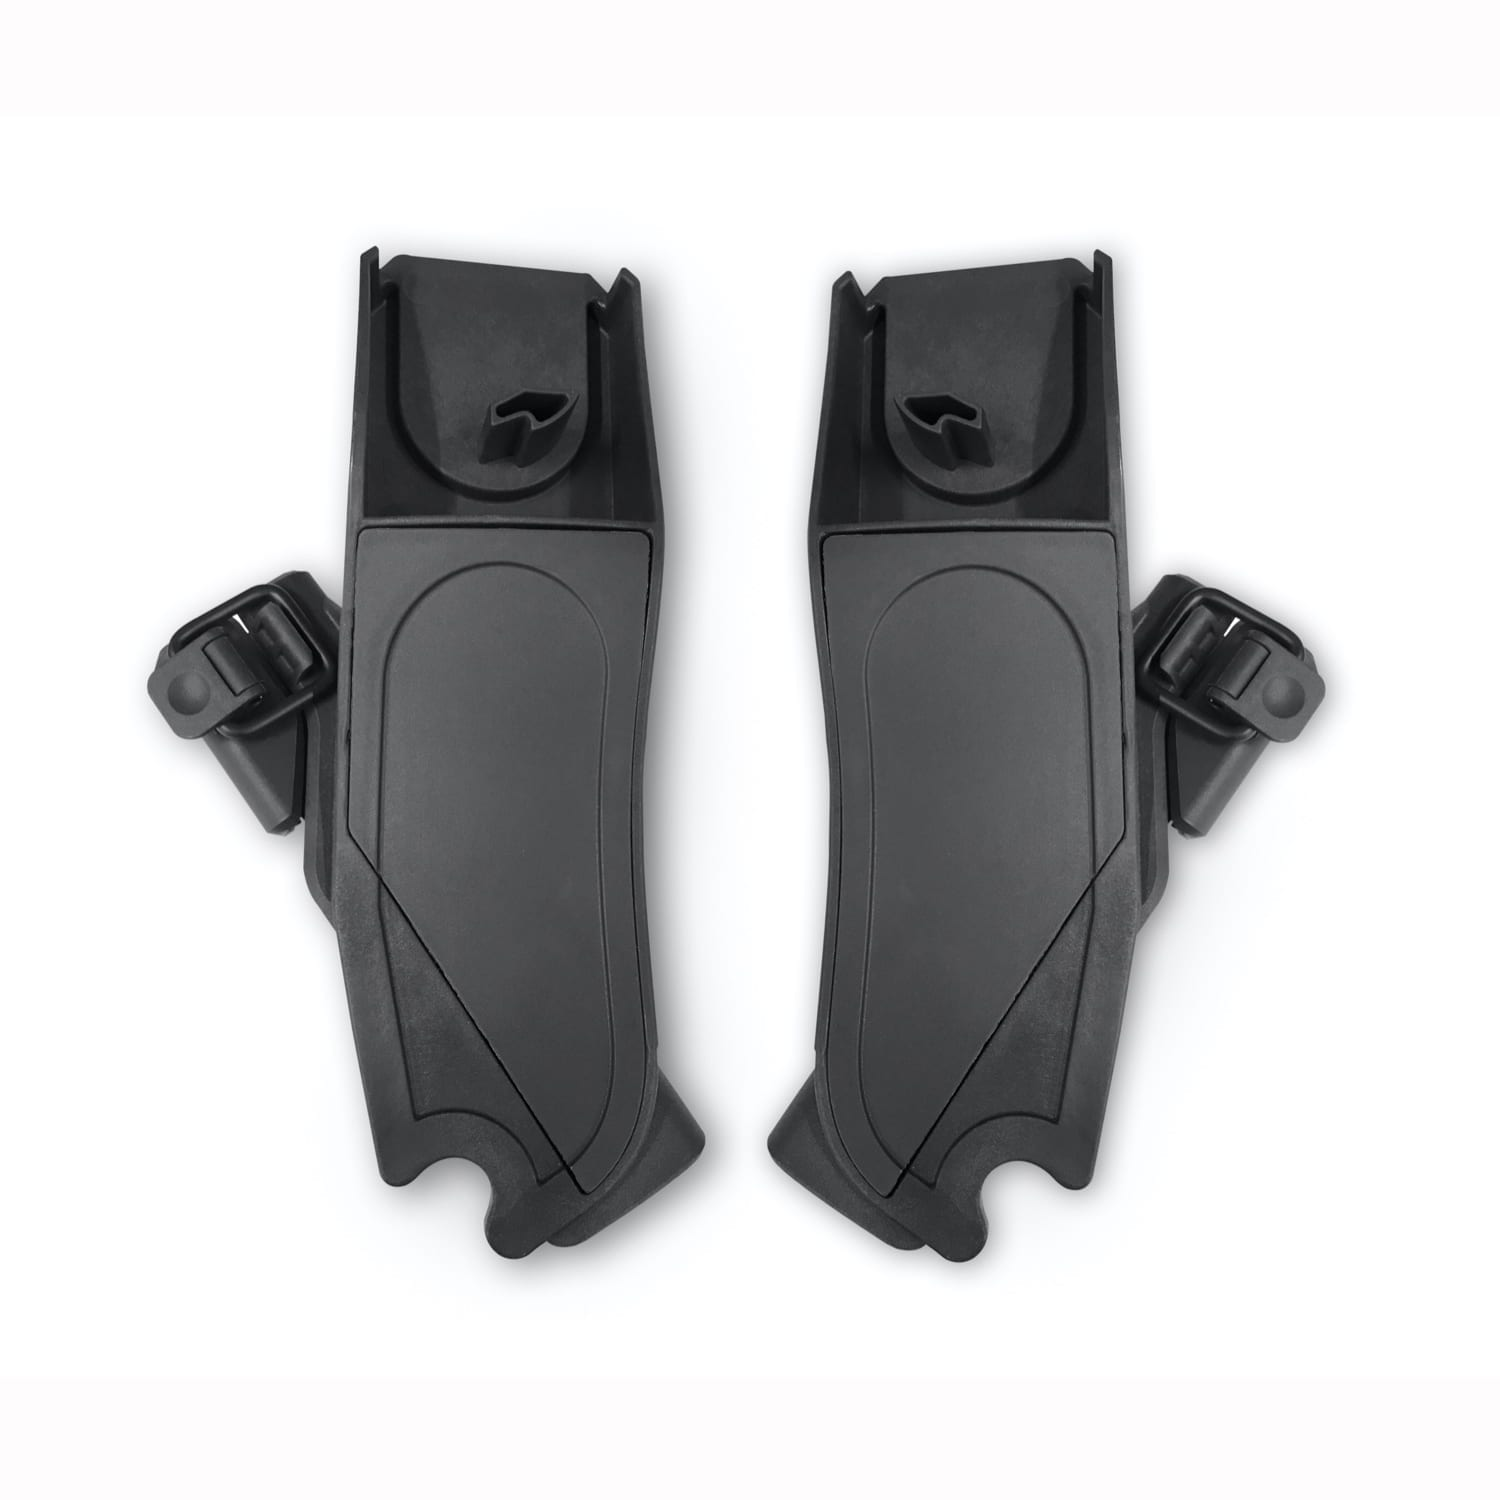 UPPABaby VISTA Lower Adapter   2 pack product image